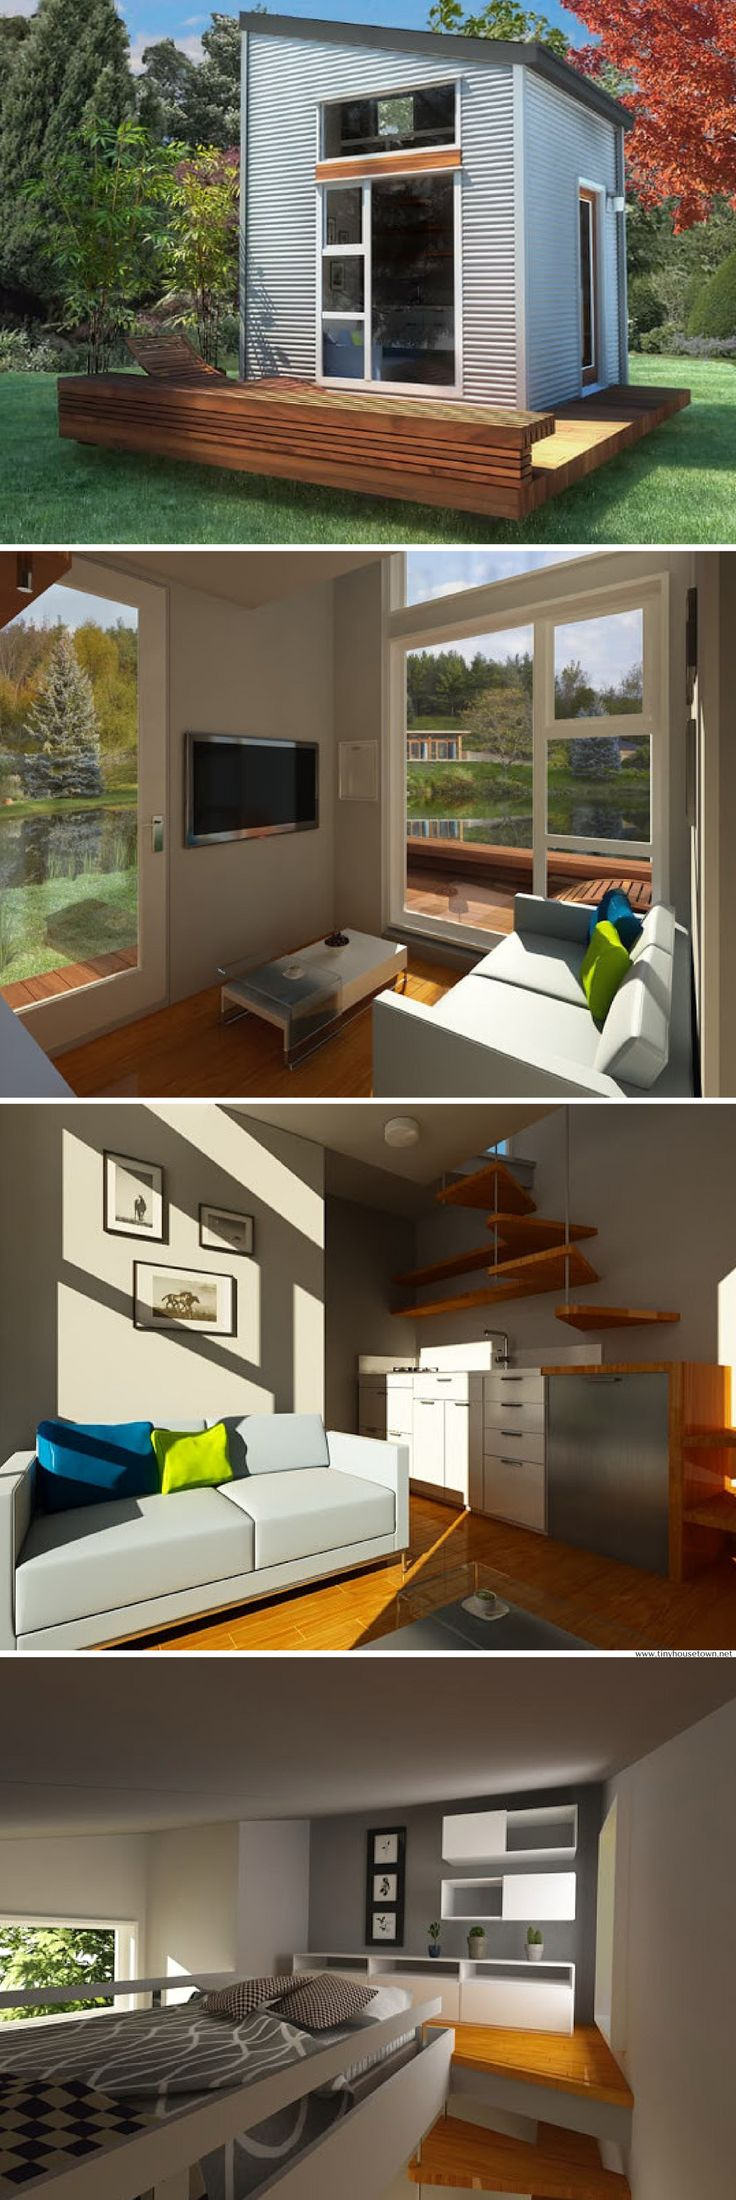 Prime 17 Best Ideas About Micro House On Pinterest Micro Homes Mini Largest Home Design Picture Inspirations Pitcheantrous